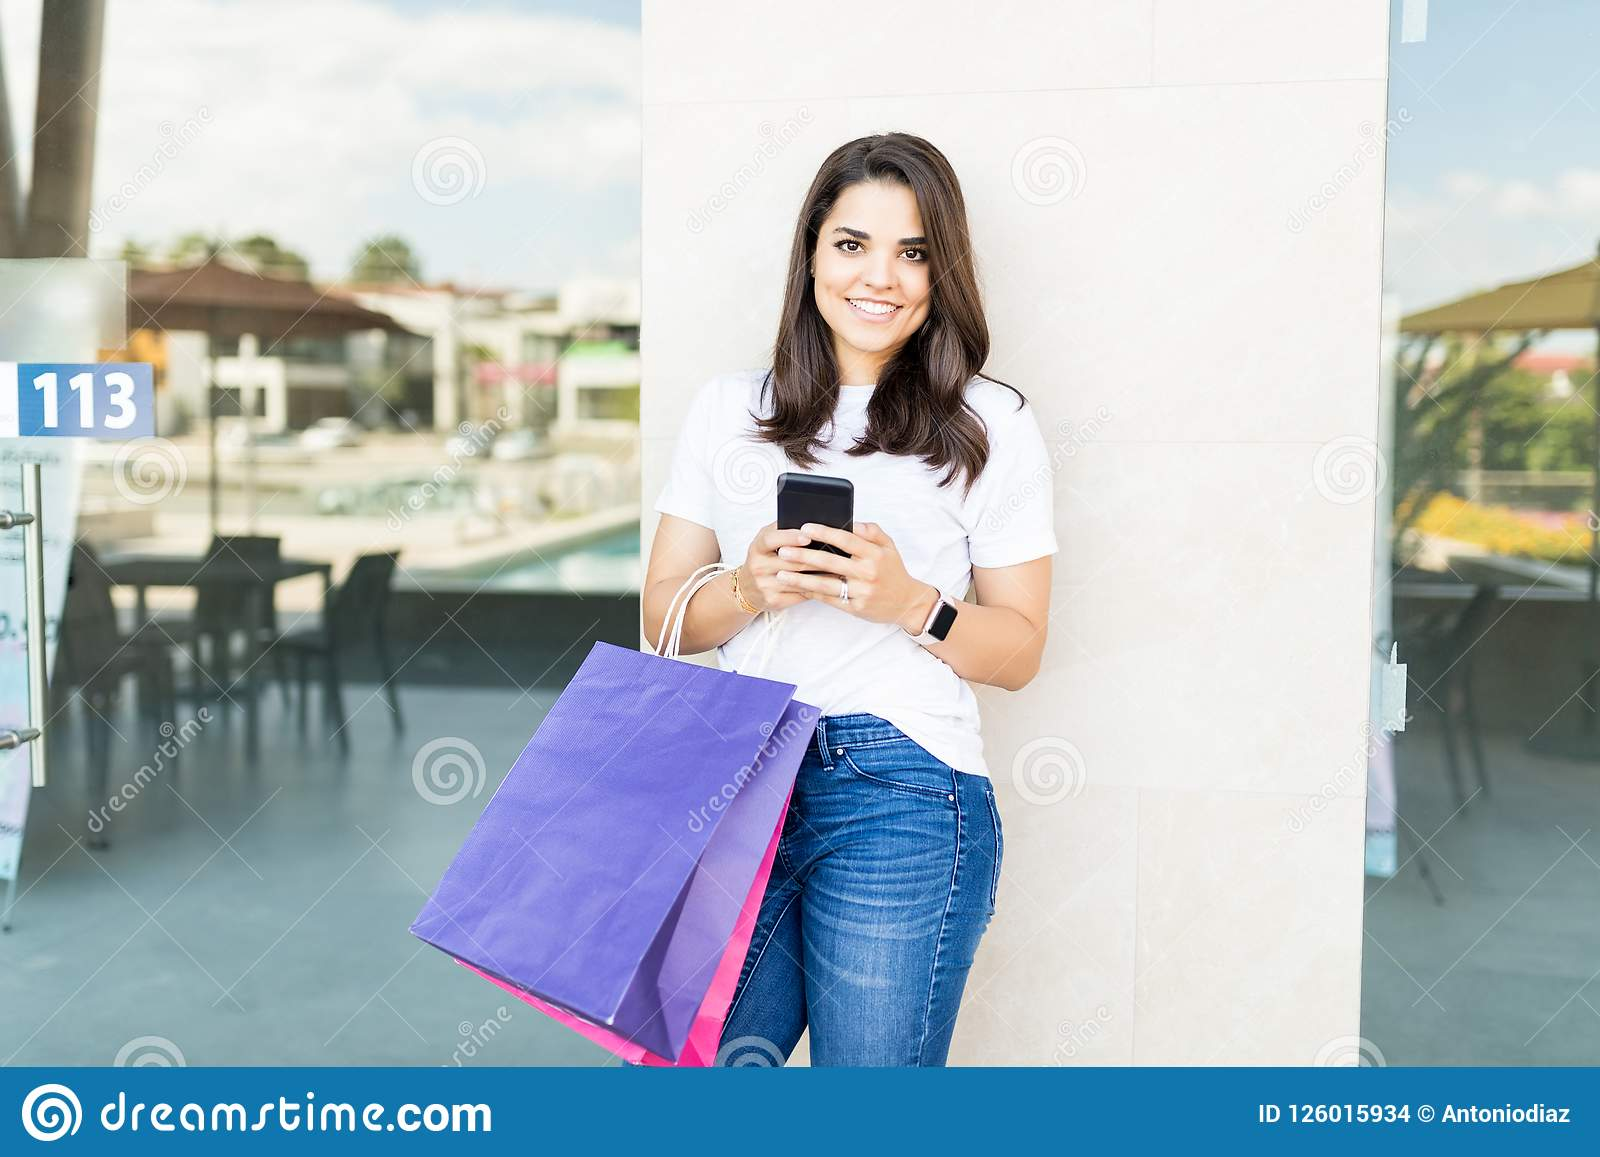 Smiling Customer With Shopping Bags Using Mobile Phone In Mall